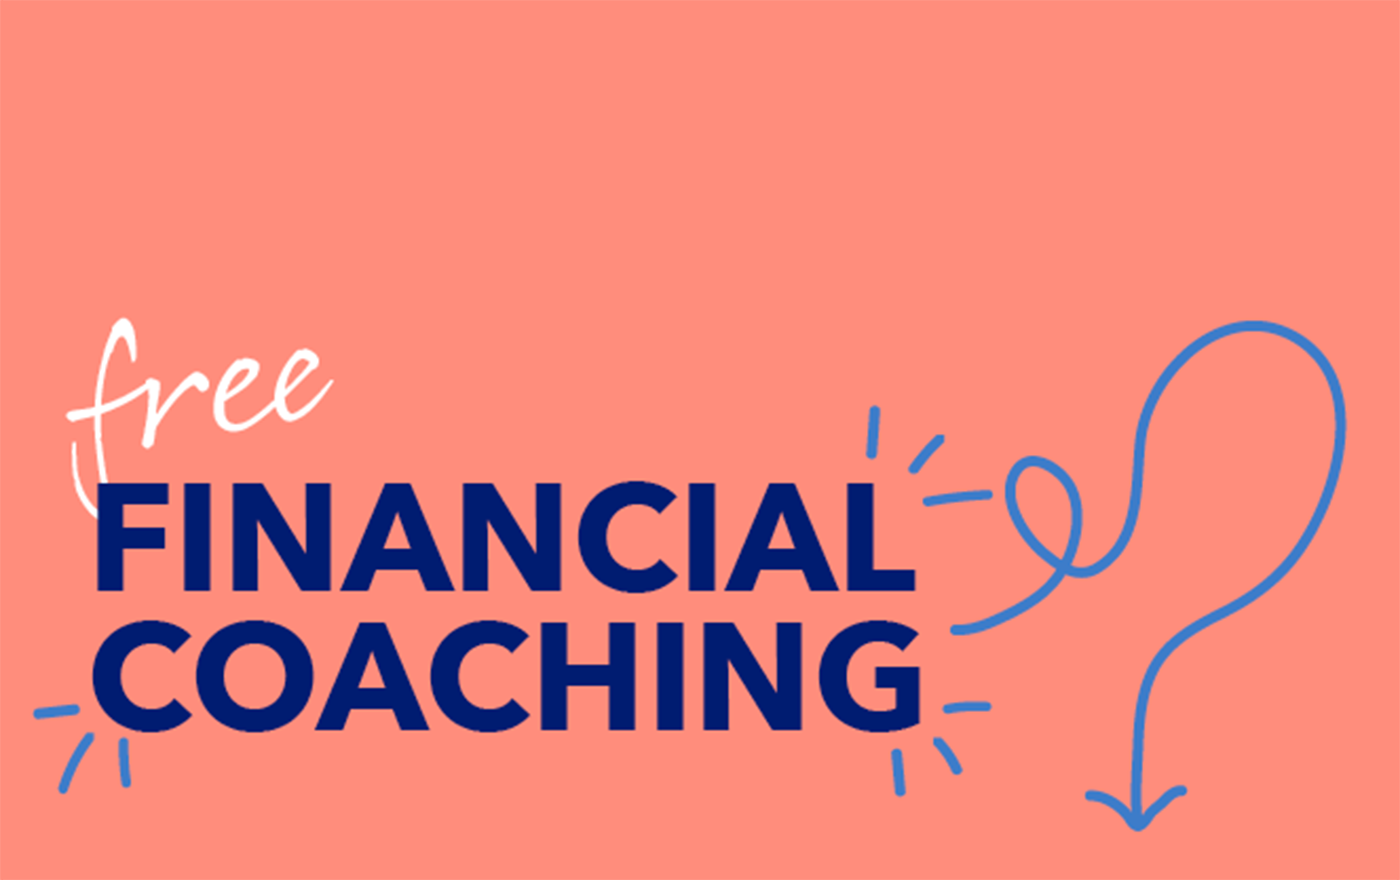 The Bank of Tioga Financial Coaching Ad